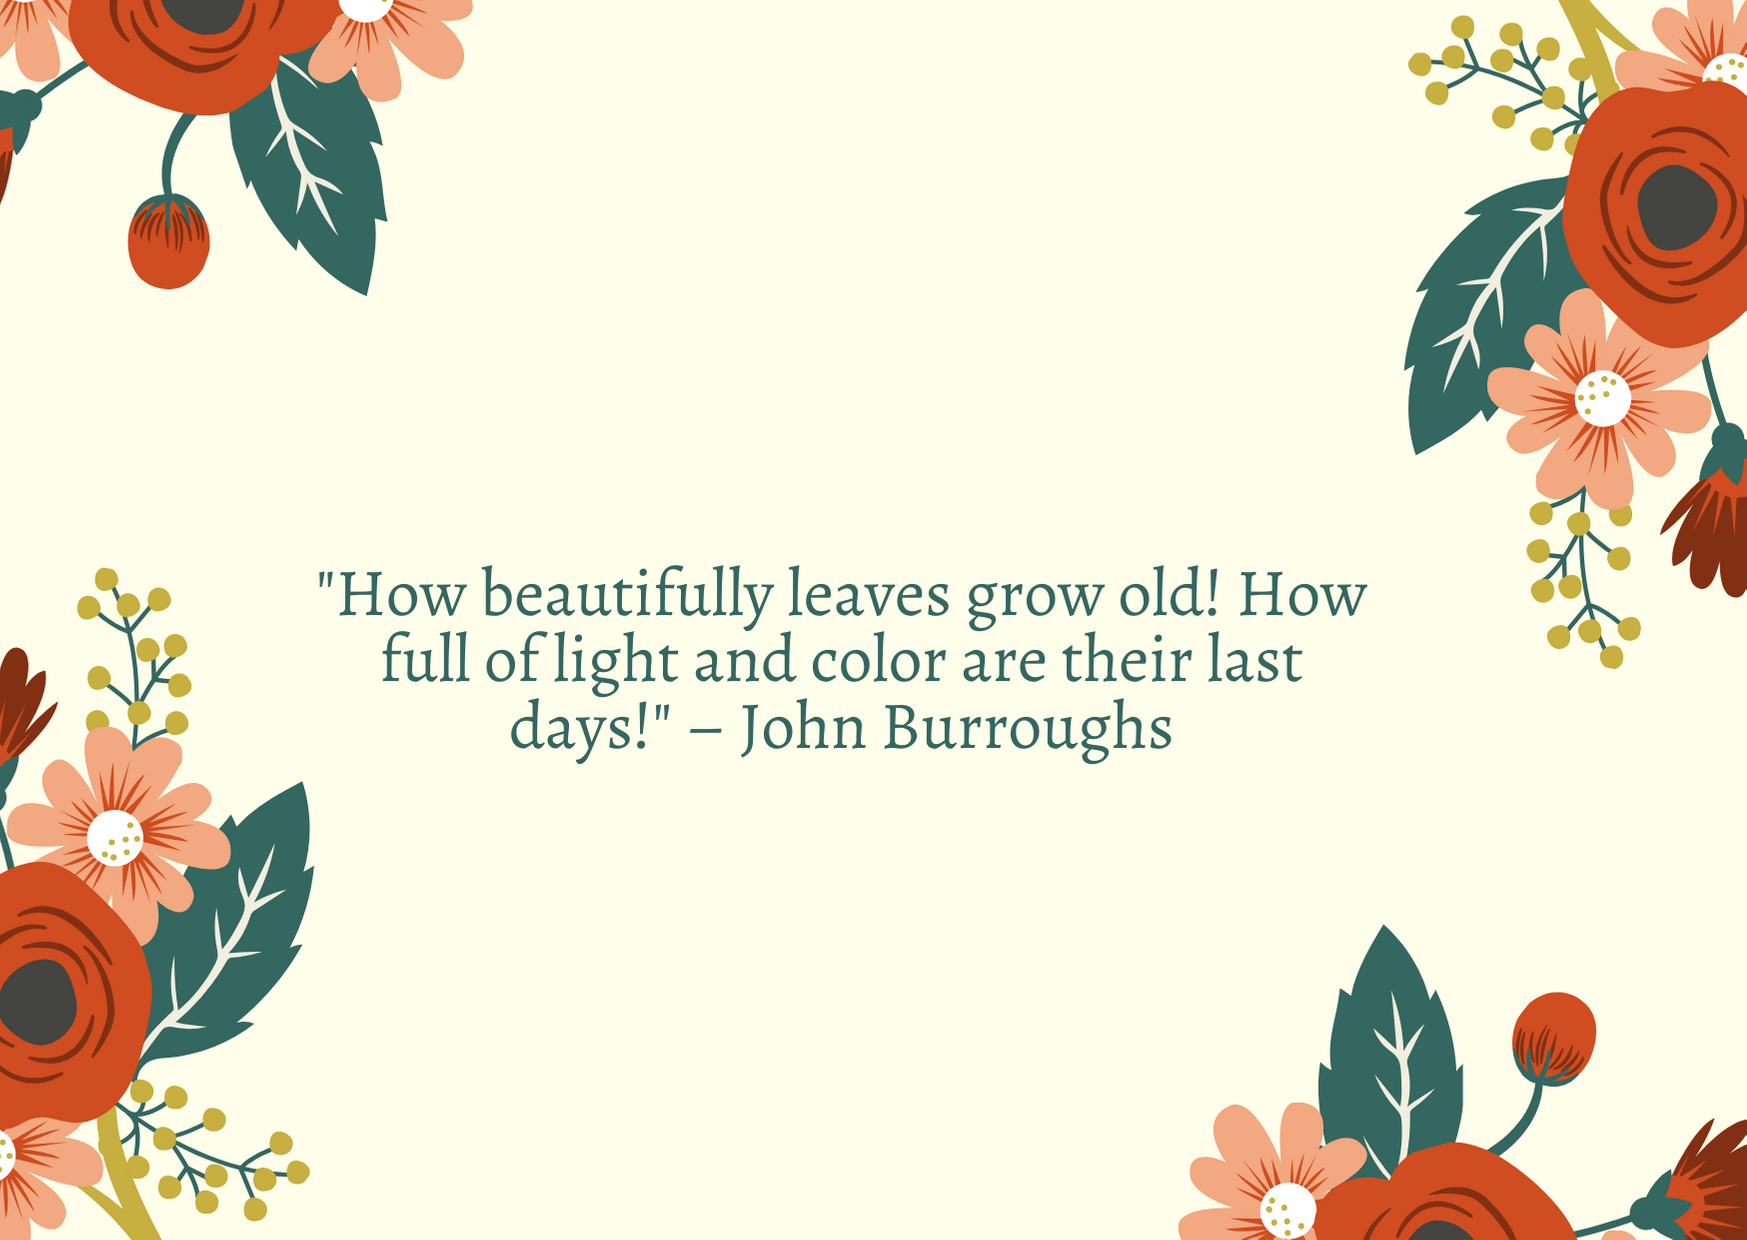 """How beautifully leaves grow old! How full of light and color are their last days!"" – John Burroughs"